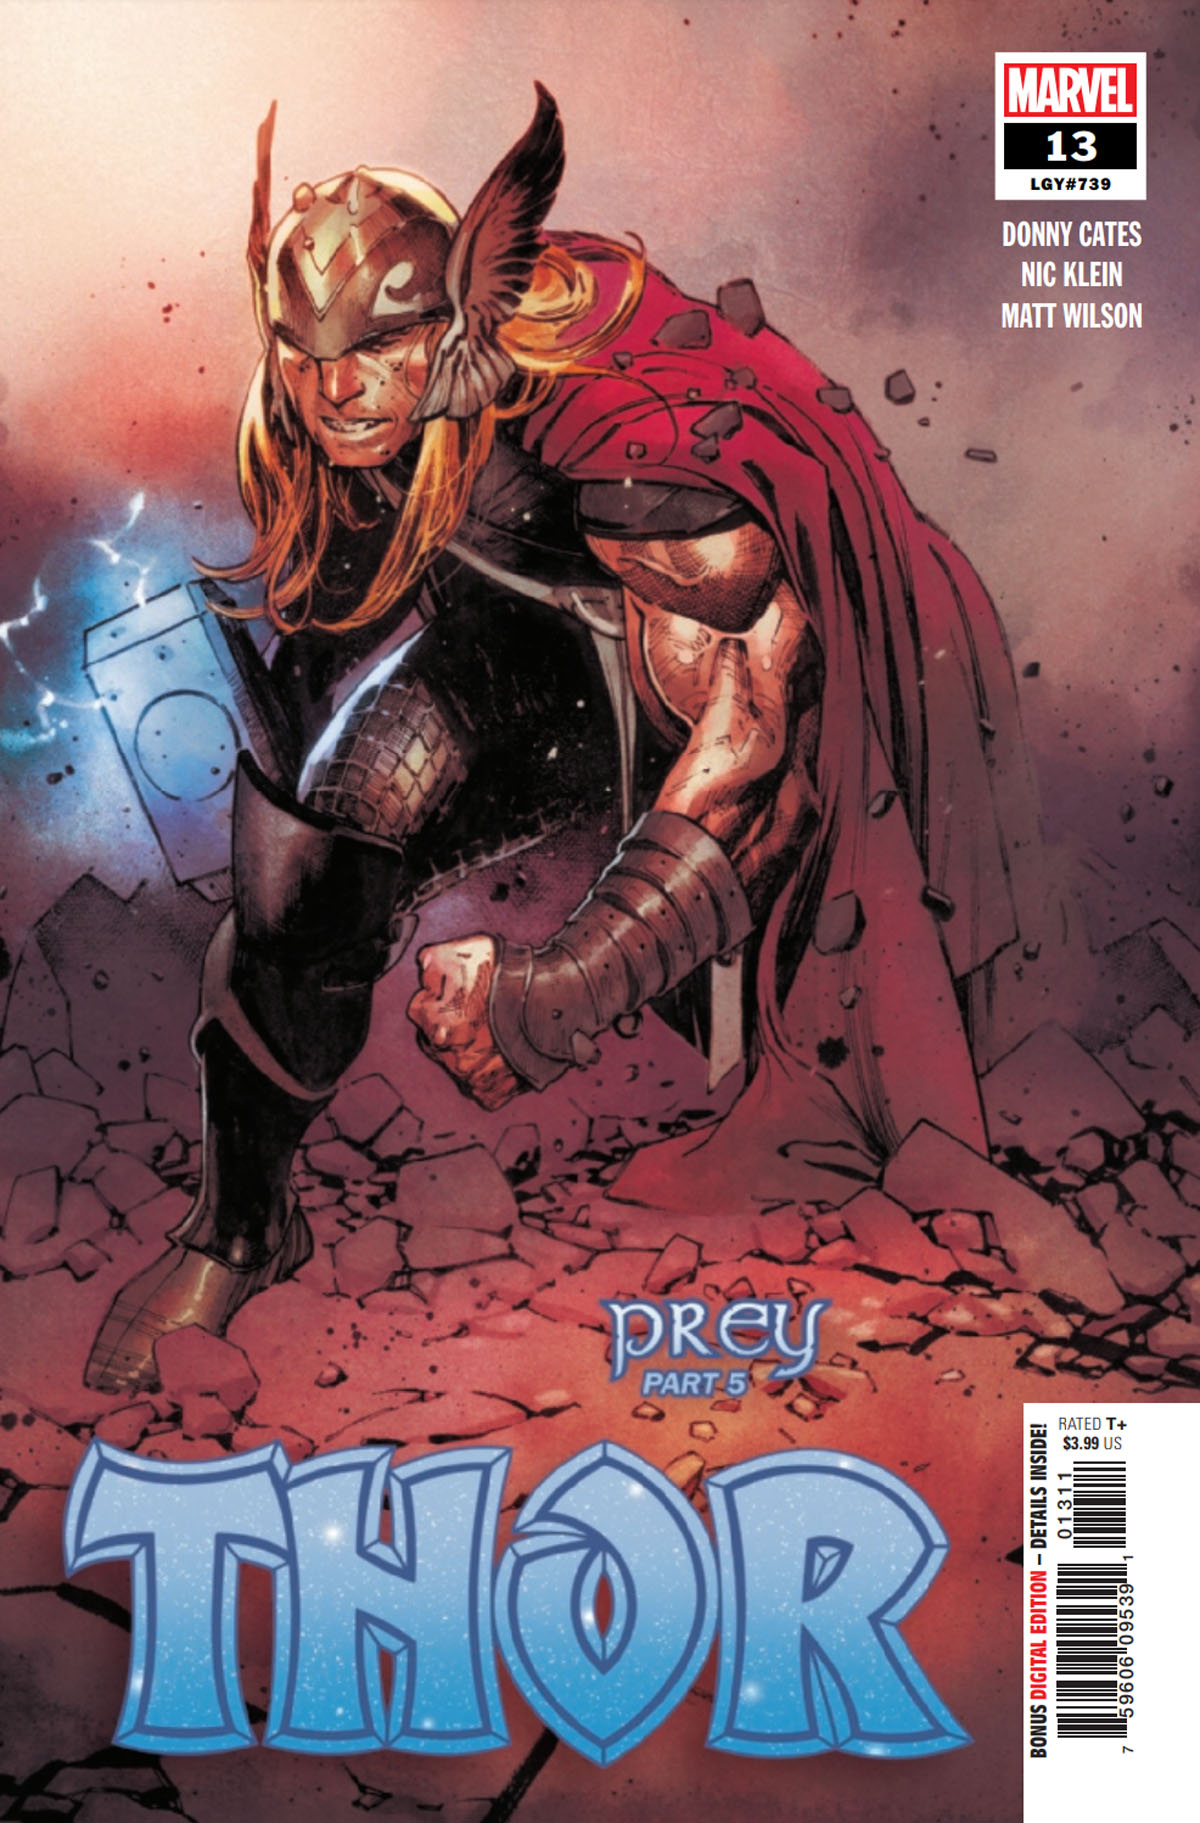 Thor #13 cover